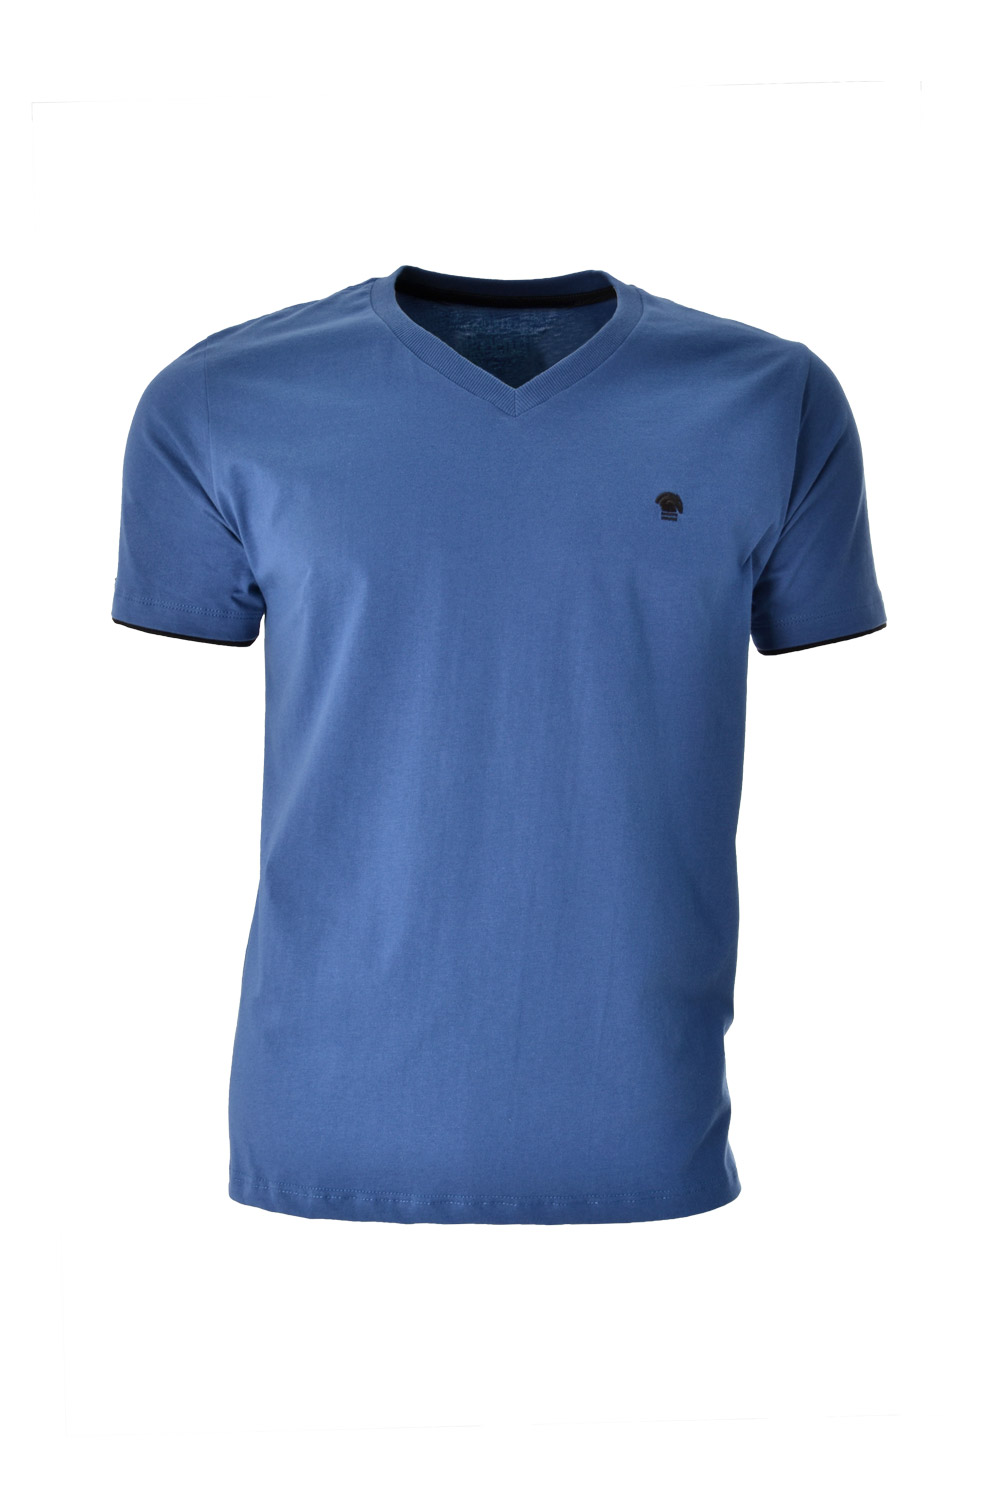 CAMISETA MC BLUES ALGODAO GOLA V LISO COMPOSE PV18